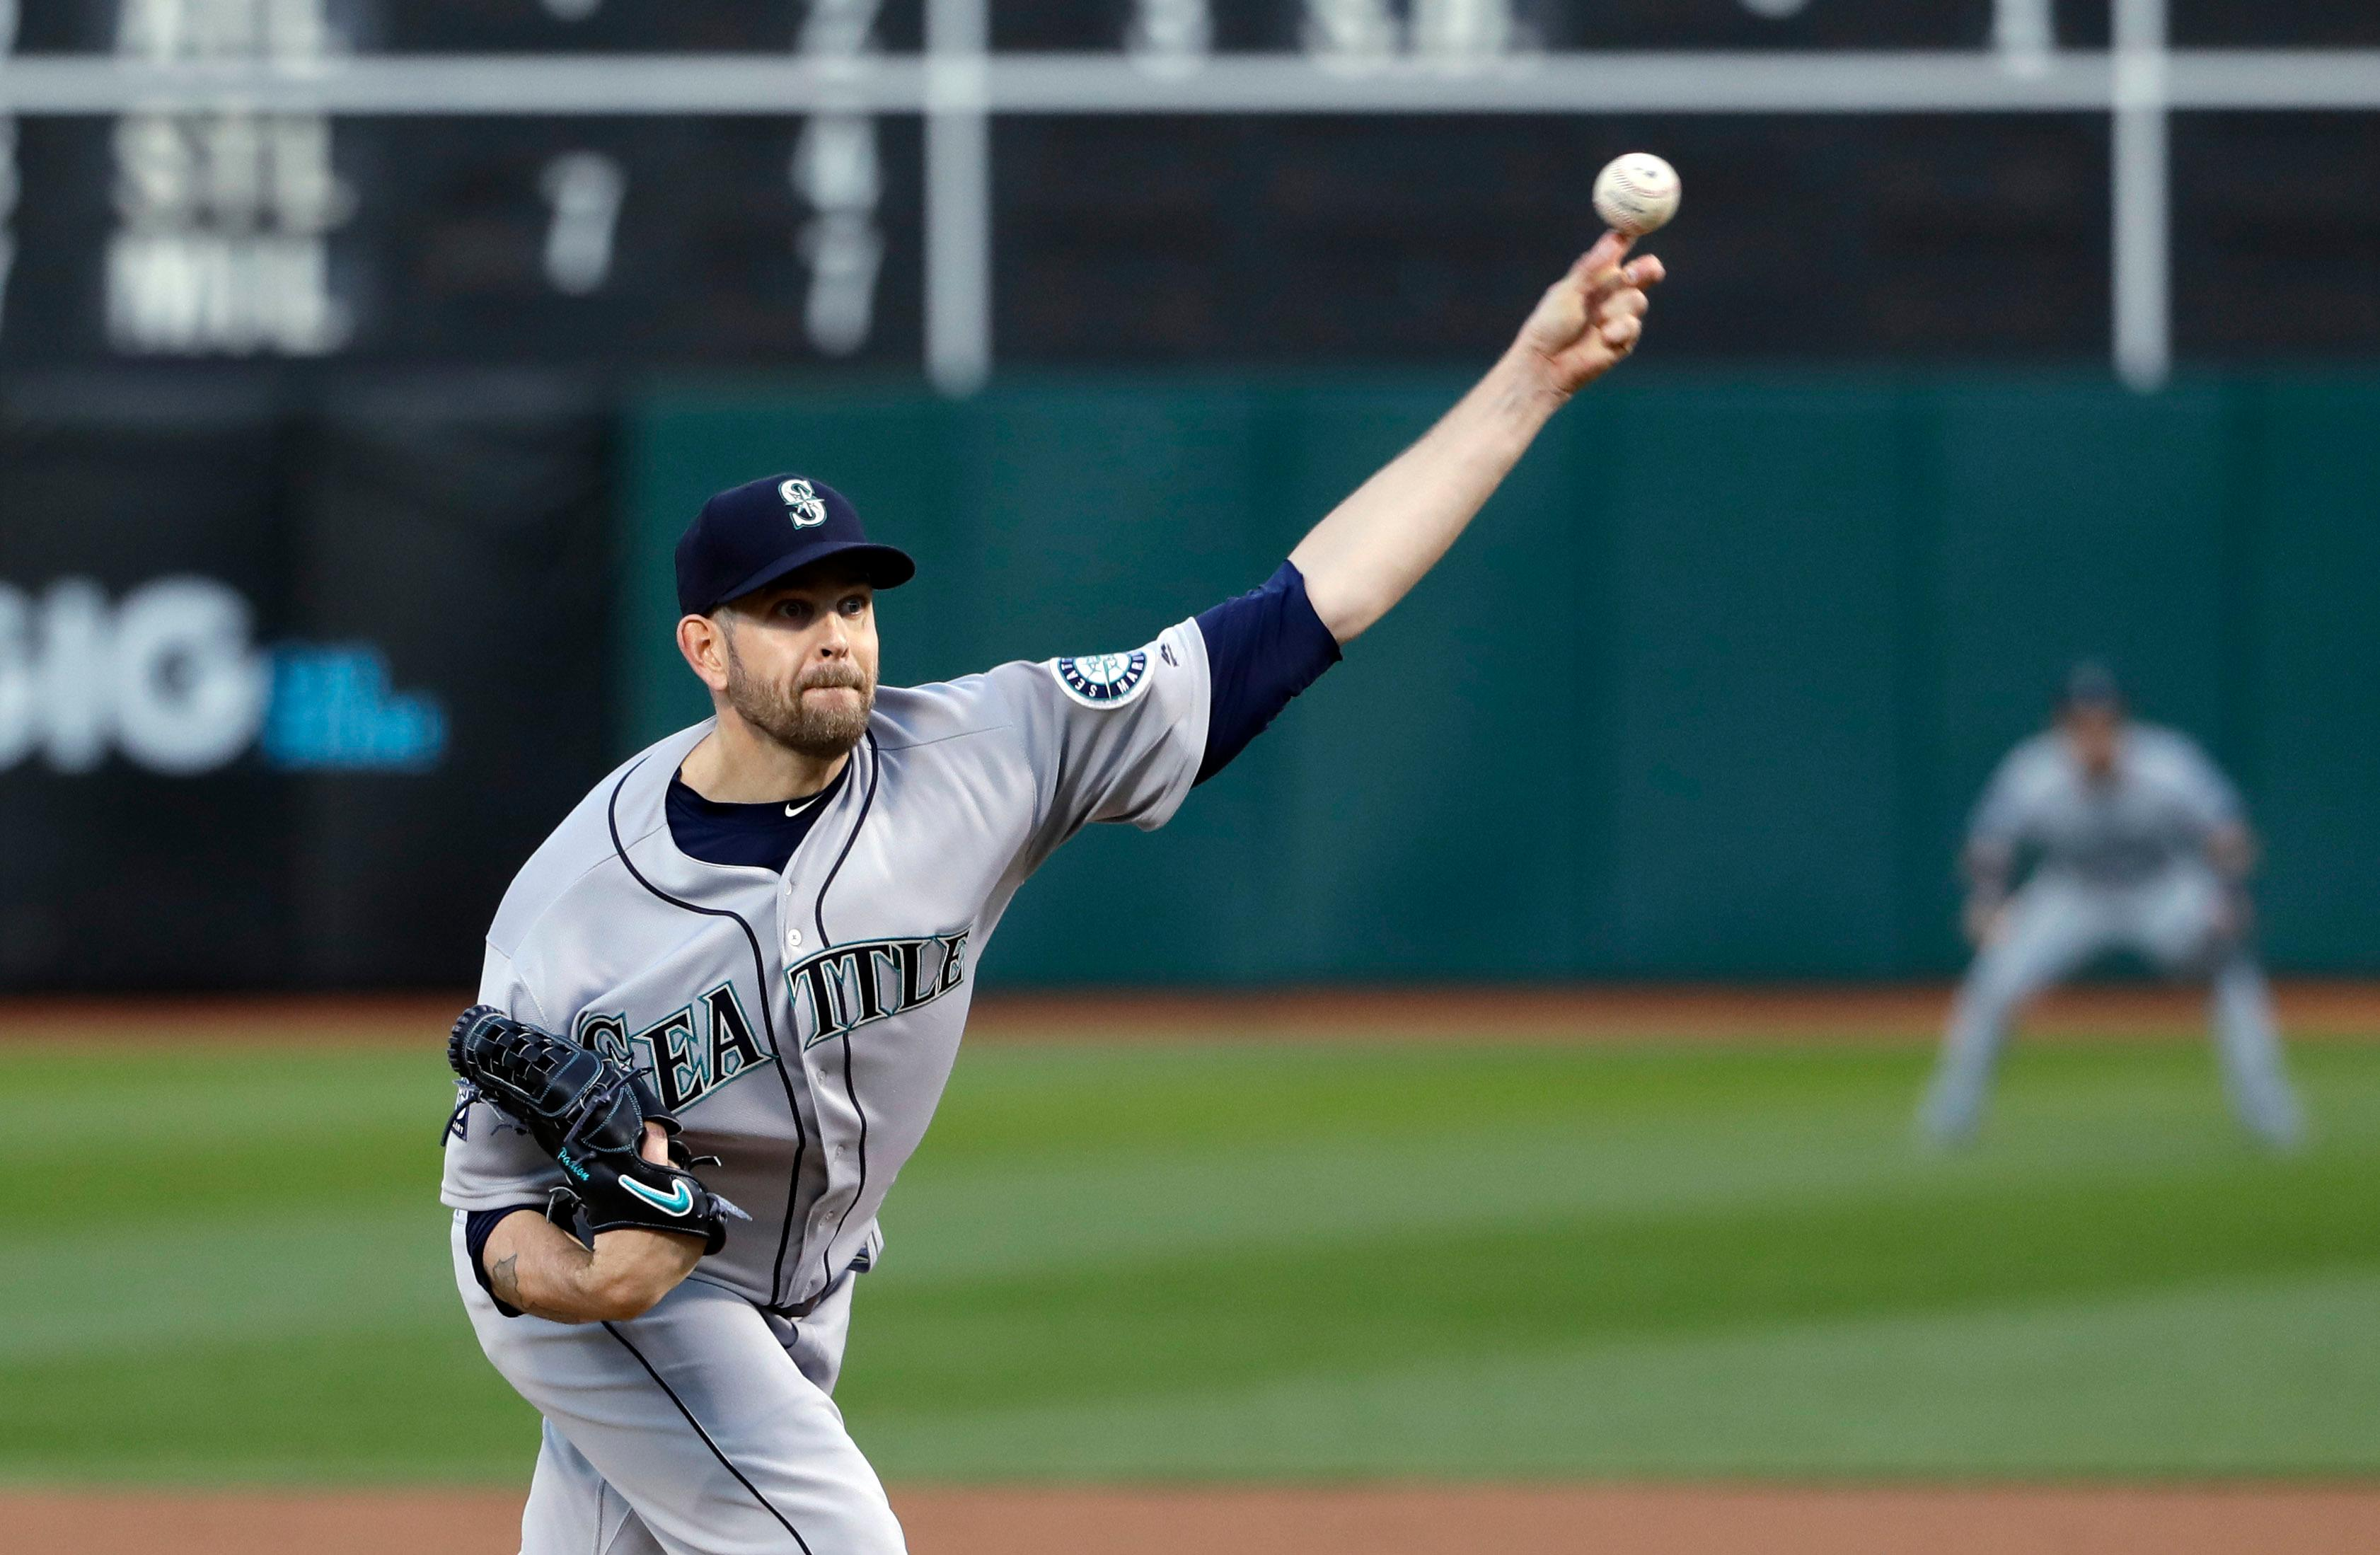 Seattle Mariners starting pitcher James Paxton throws to the Oakland Athletics during the first inning of a baseball game Thursday, April 20, 2017, in Oakland, Calif. (AP Photo/Marcio Jose Sanchez)